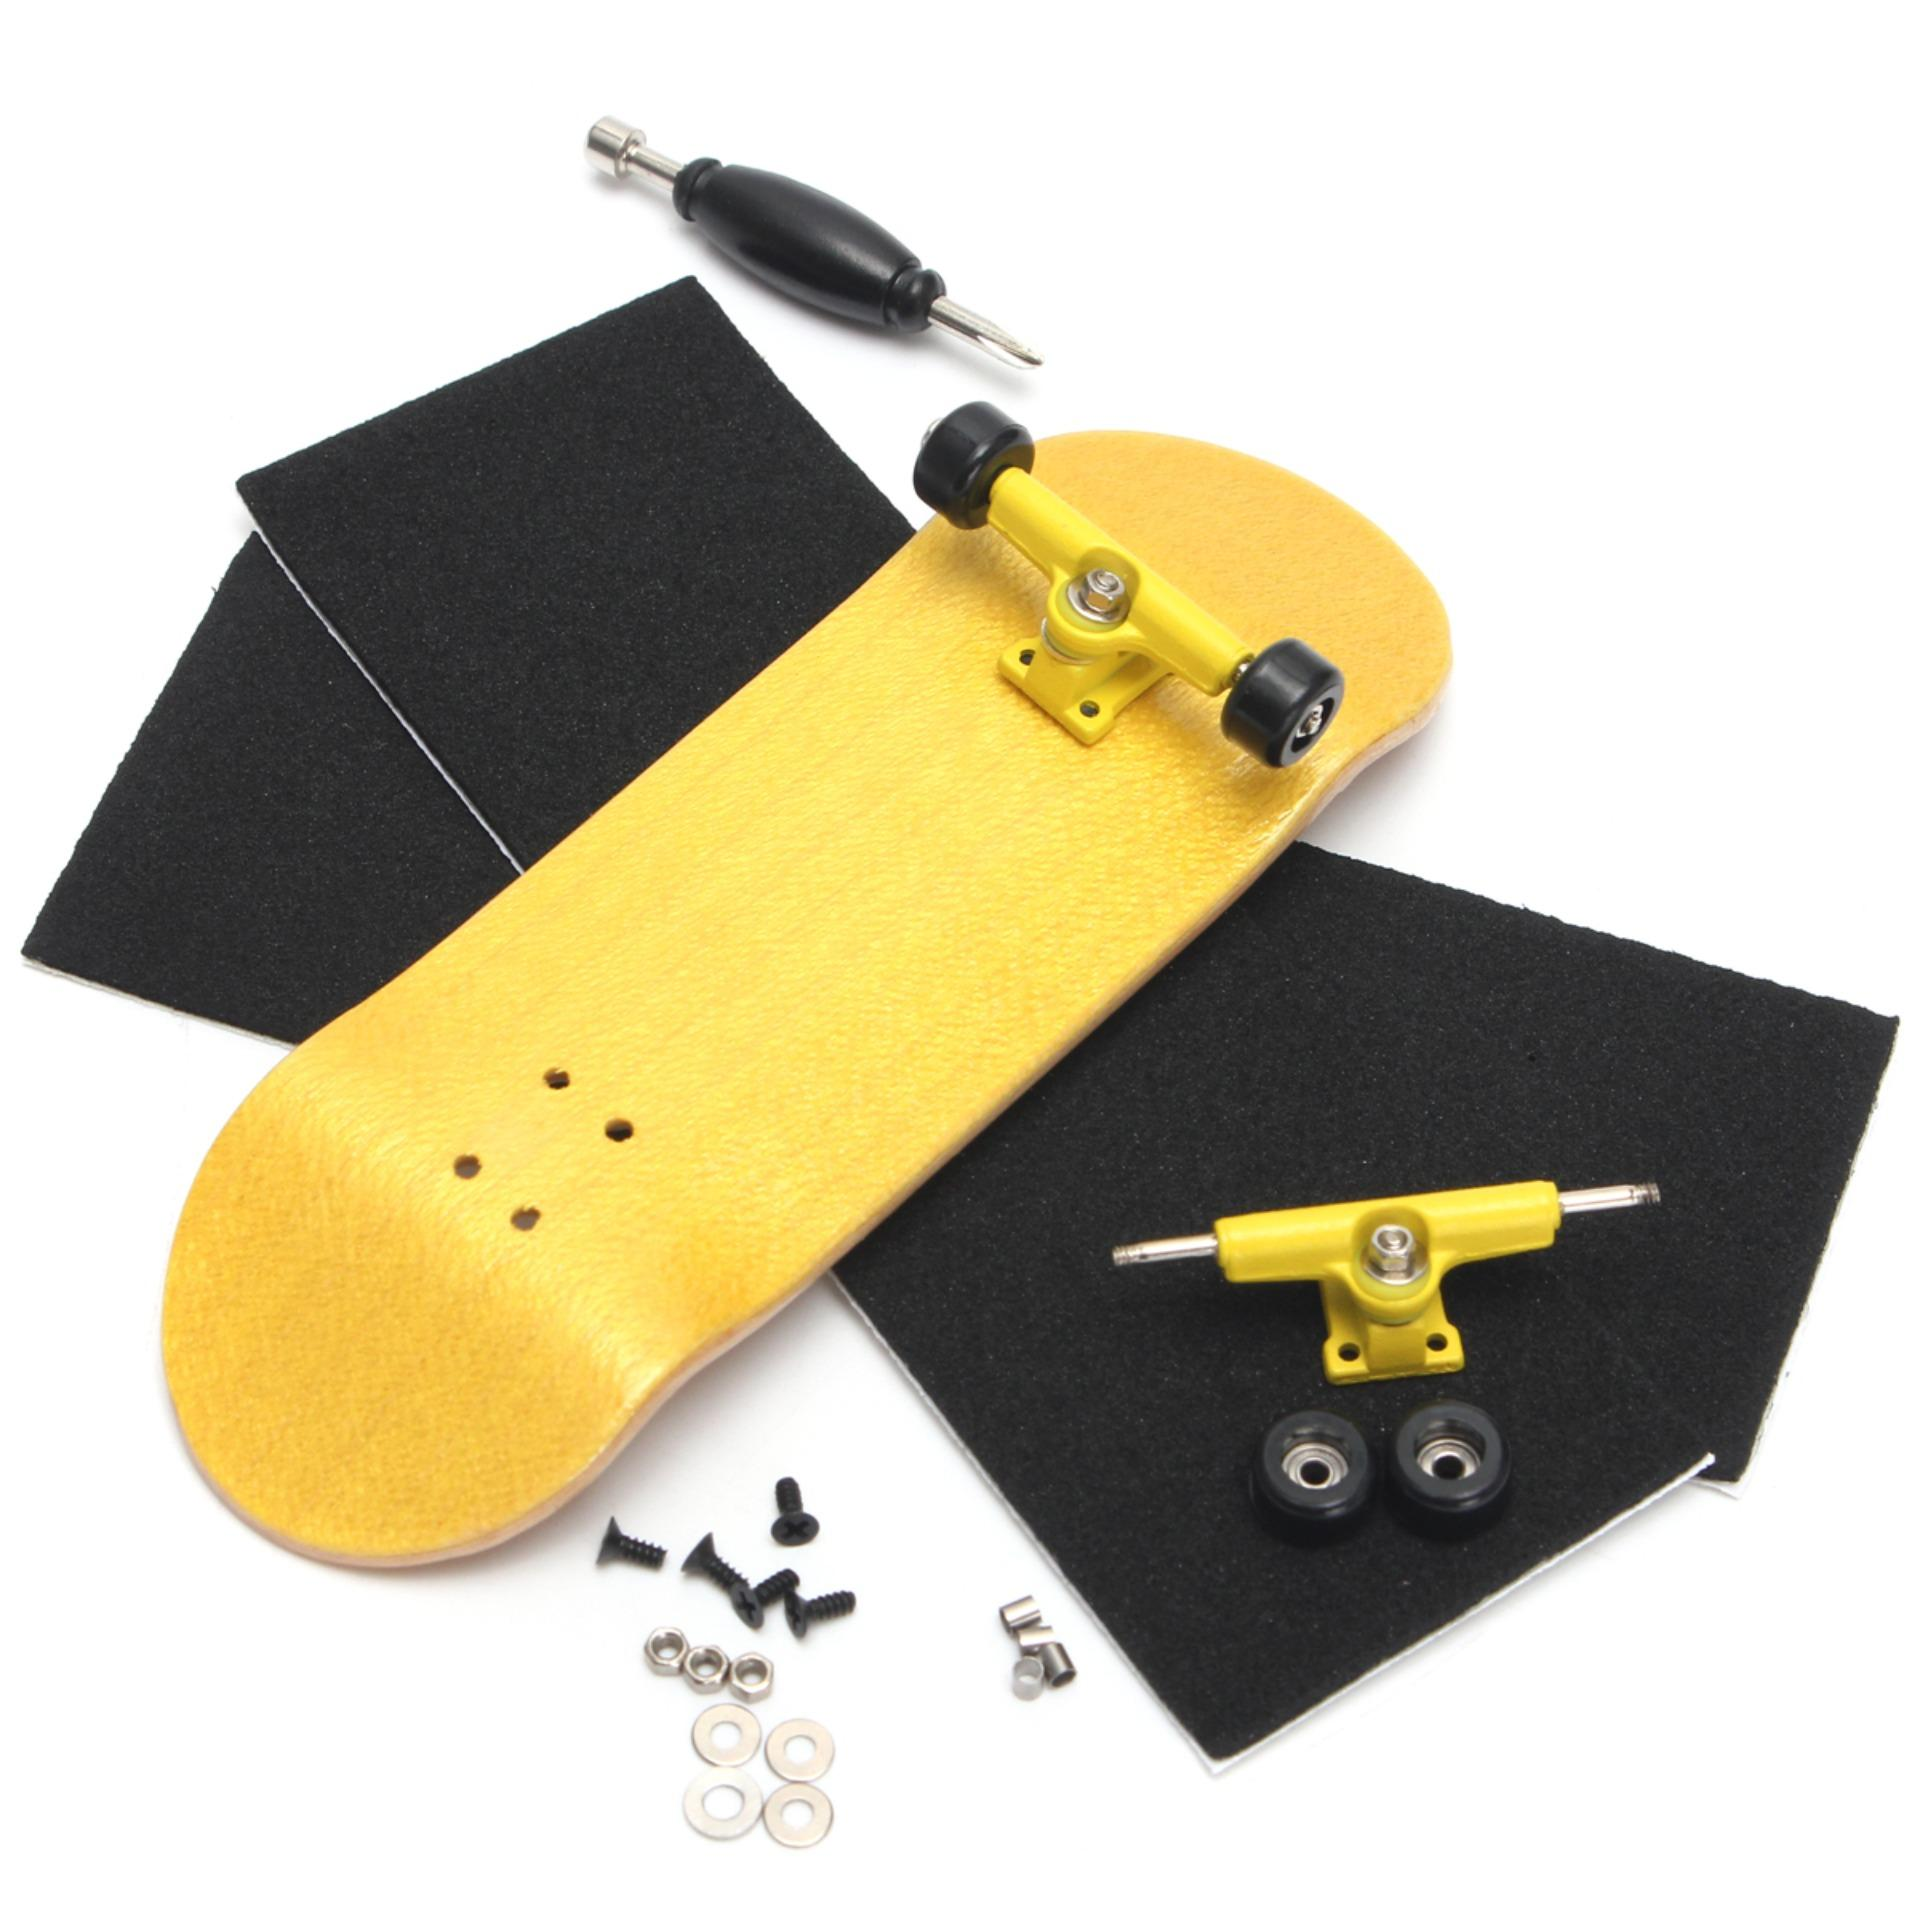 Complete Wooden Fingerboard Finger Skate Board Sport Kids Toy (yellow) - Intl By Freebang.